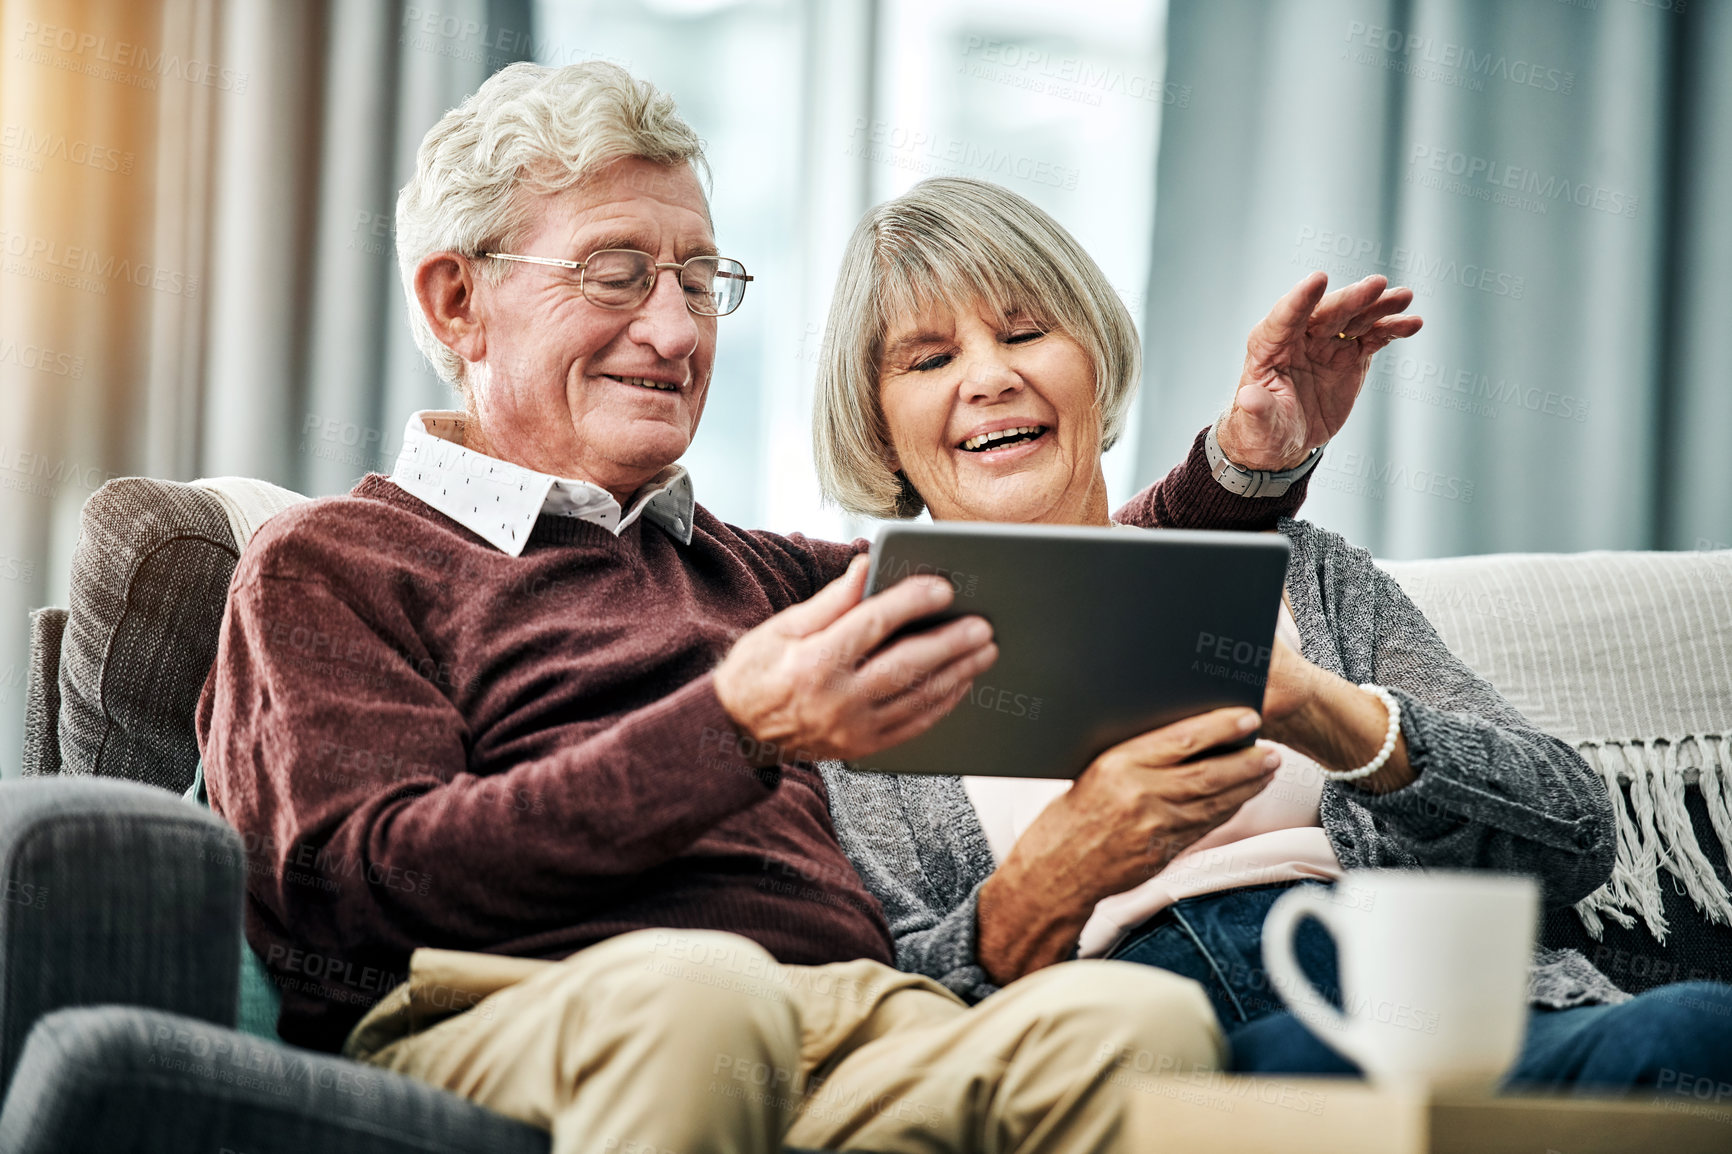 Buy stock photo Shot of a happy elderly couple using a digital tablet while relaxing on the sofa together at home